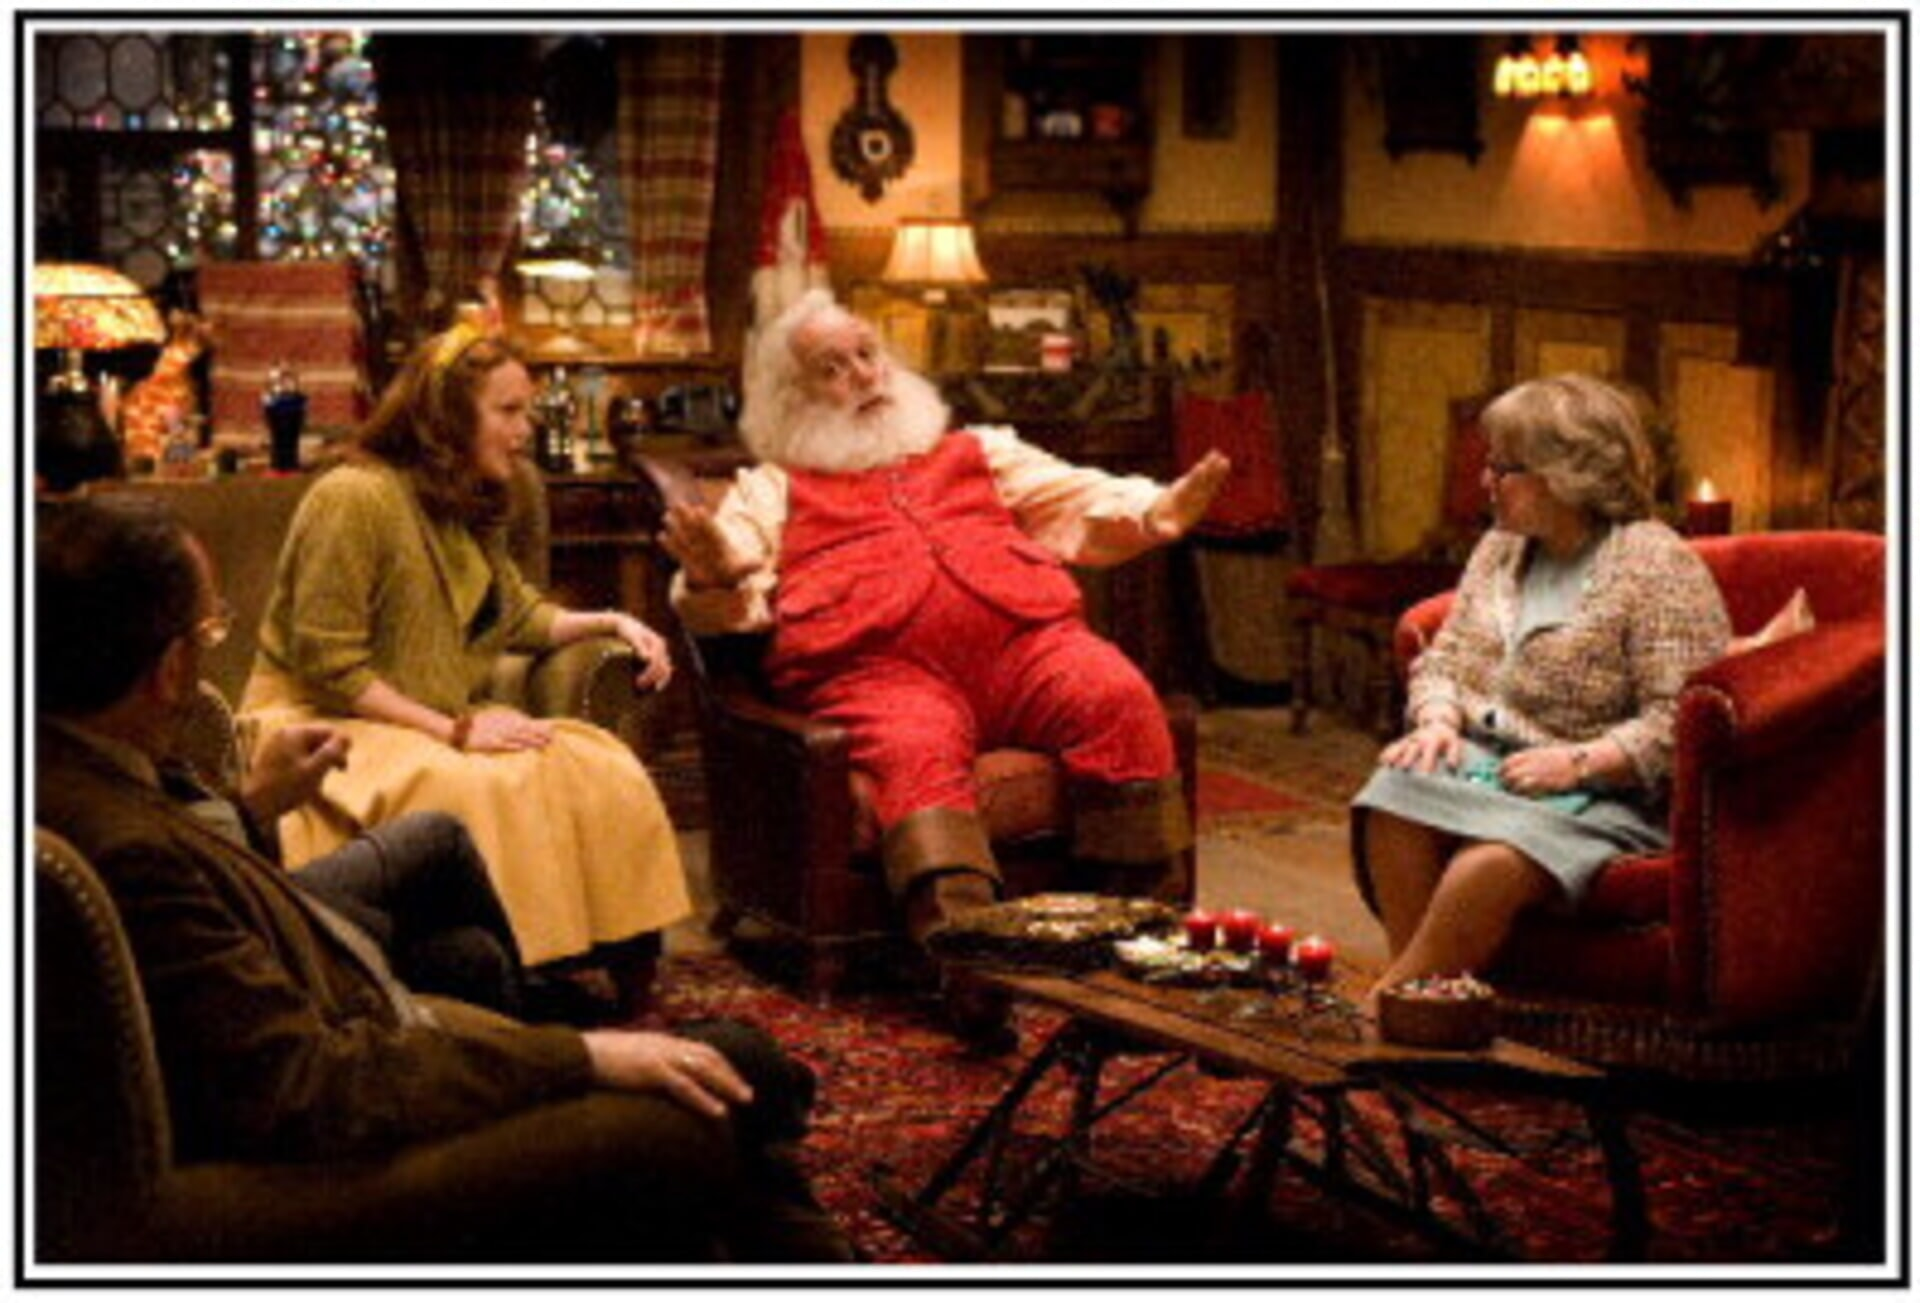 Fred Claus - Image 18